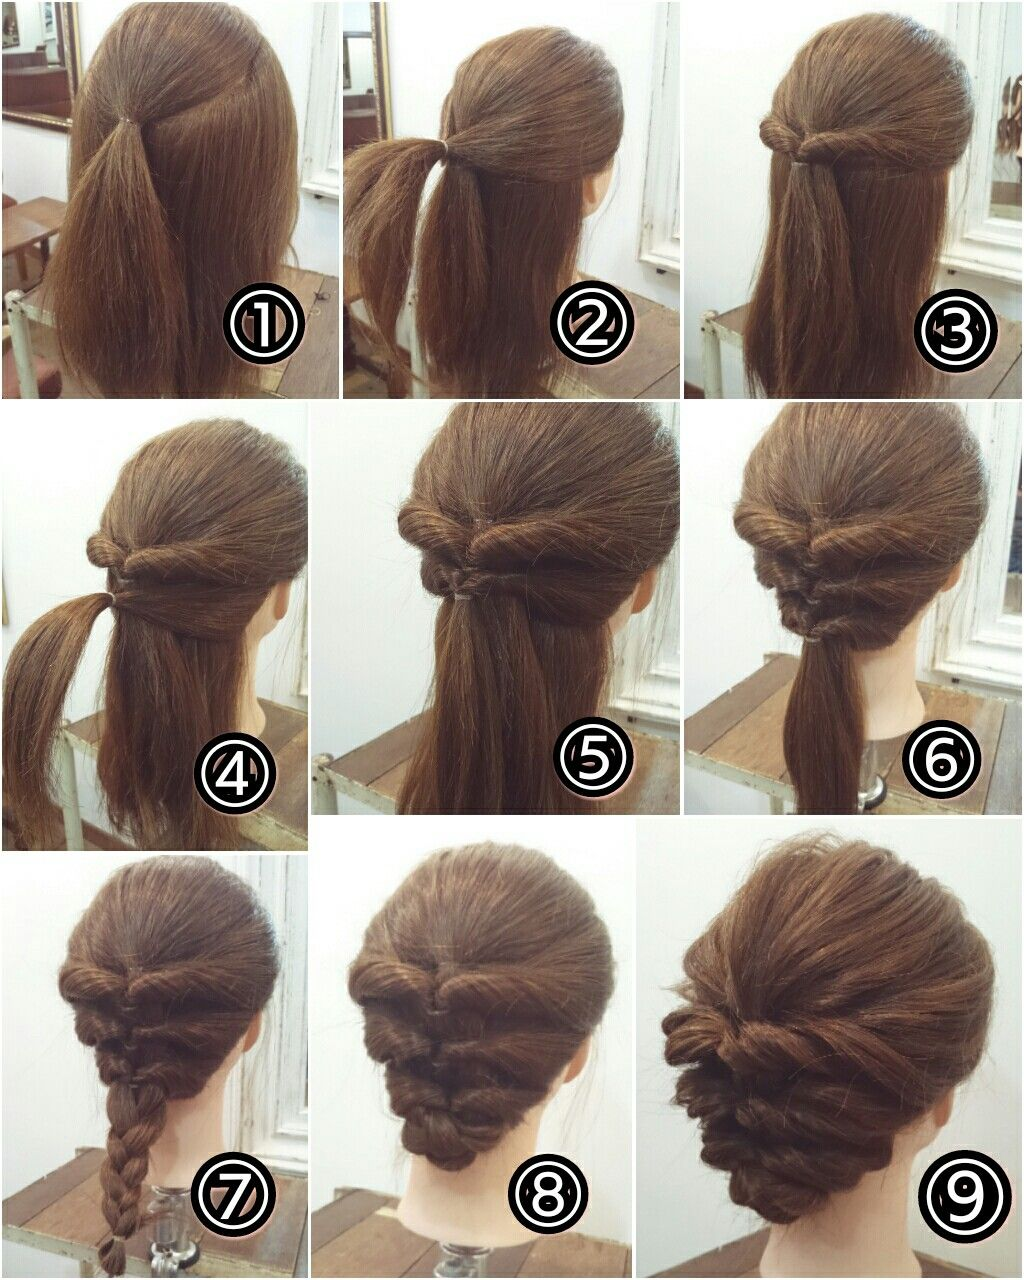 Pin by tara smalley on hair pinterest hair style updos and makeup